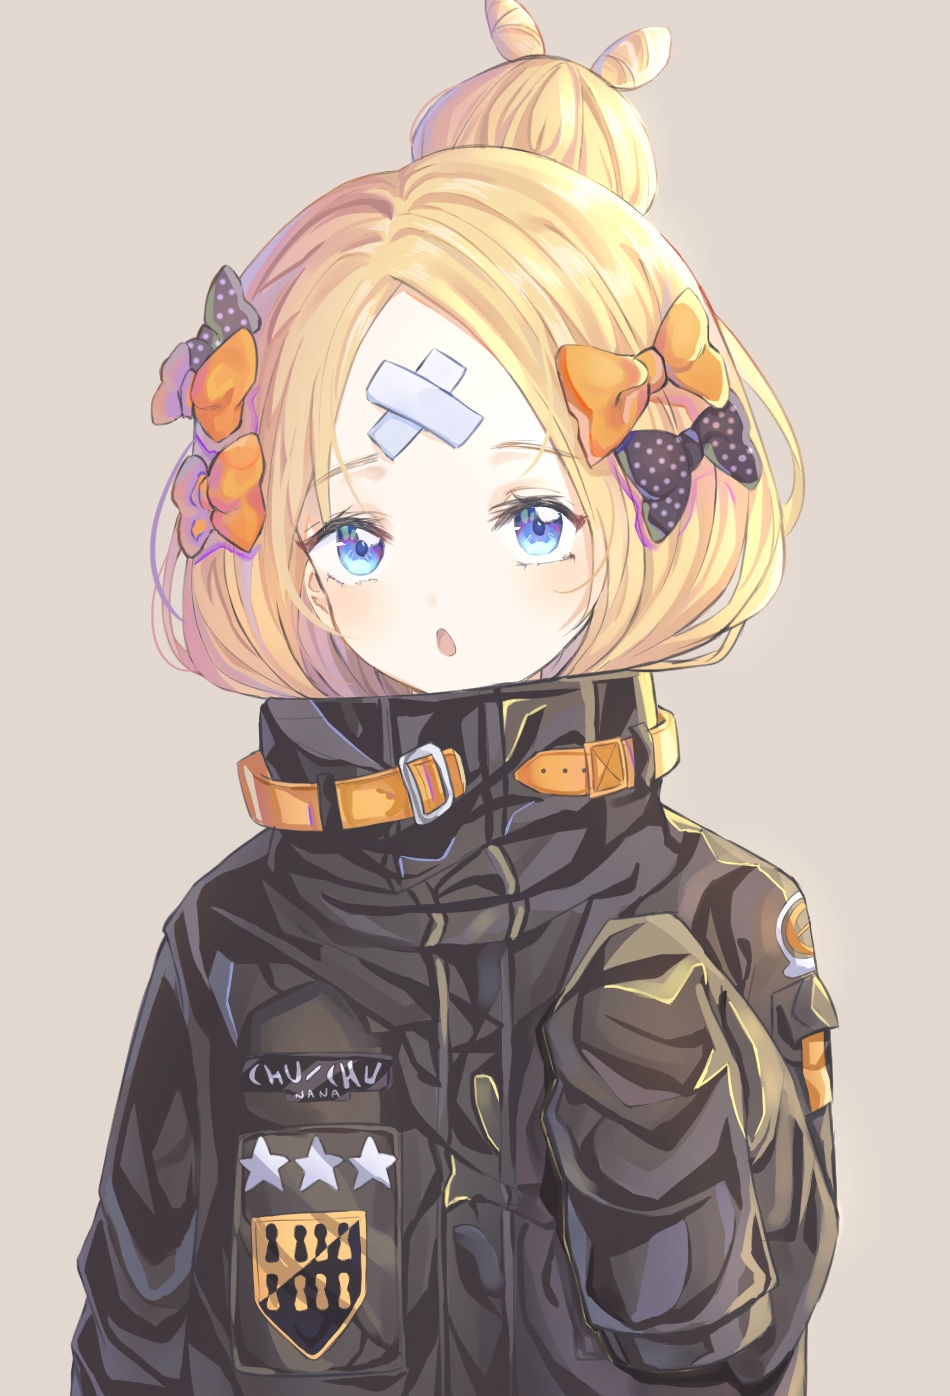 1girl abigail_williams_(fate/grand_order) bangs black_bow black_jacket blonde_hair blue_eyes bow brown_background chun_sam commentary crossed_bandaids eyebrows_visible_through_hair fate/grand_order fate_(series) hair_bow hair_bun heroic_spirit_traveling_outfit highres jacket long_hair long_sleeves looking_at_viewer orange_bow parted_bangs parted_lips polka_dot polka_dot_bow simple_background sleeves_past_fingers sleeves_past_wrists solo star upper_body